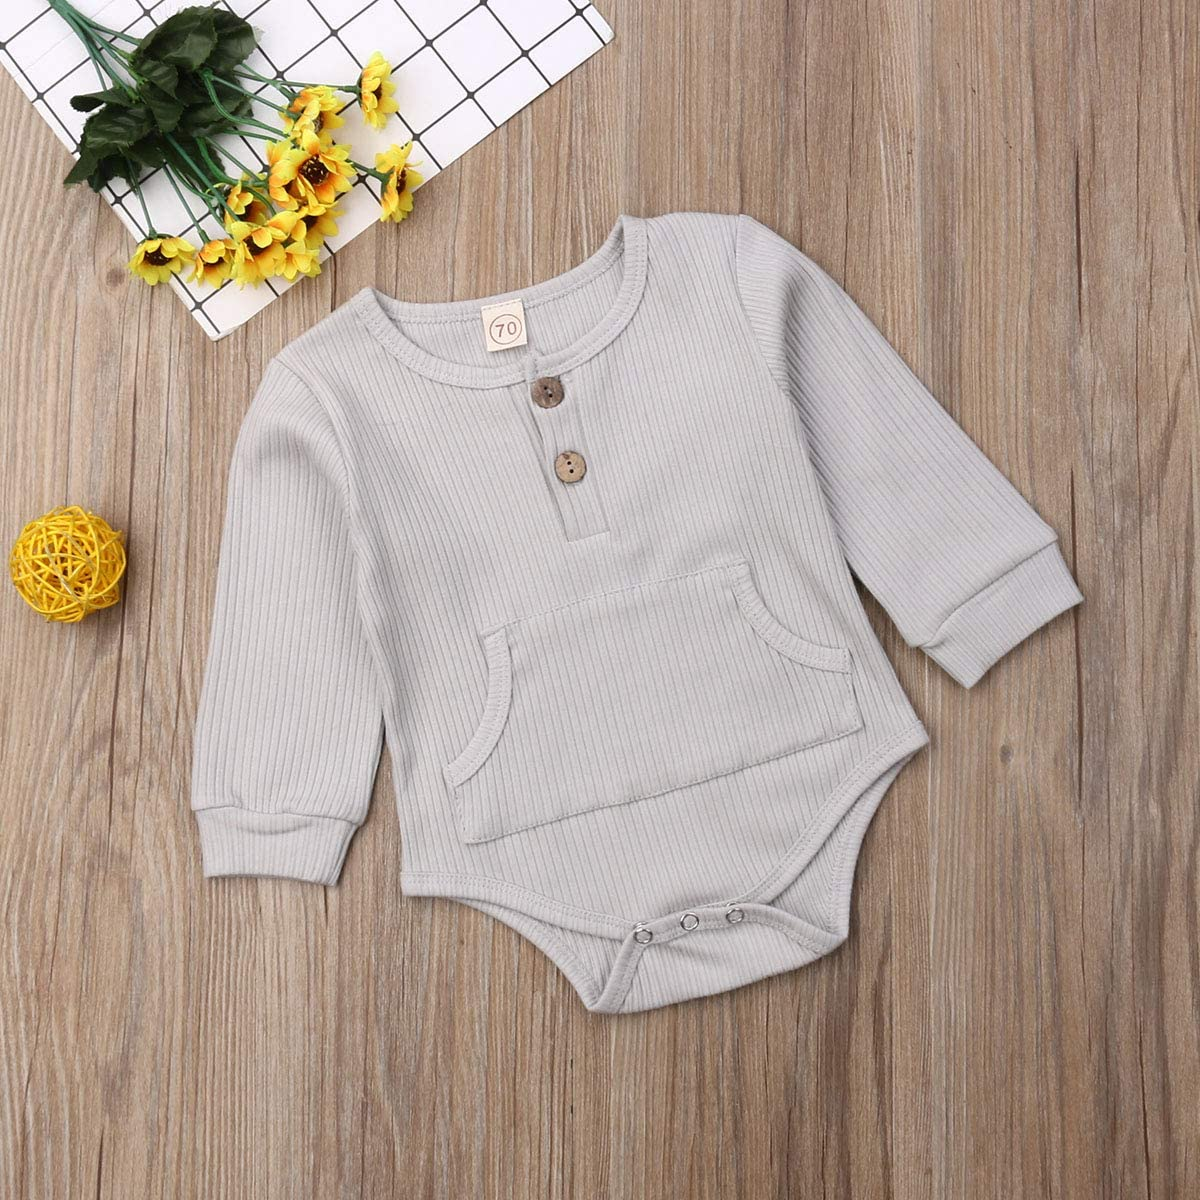 1Pc Newborn Girl Boy Ribbed Knitted Cotton Bodysuit Baby Solid Color Long Sleeve Romper Tops with Pocket